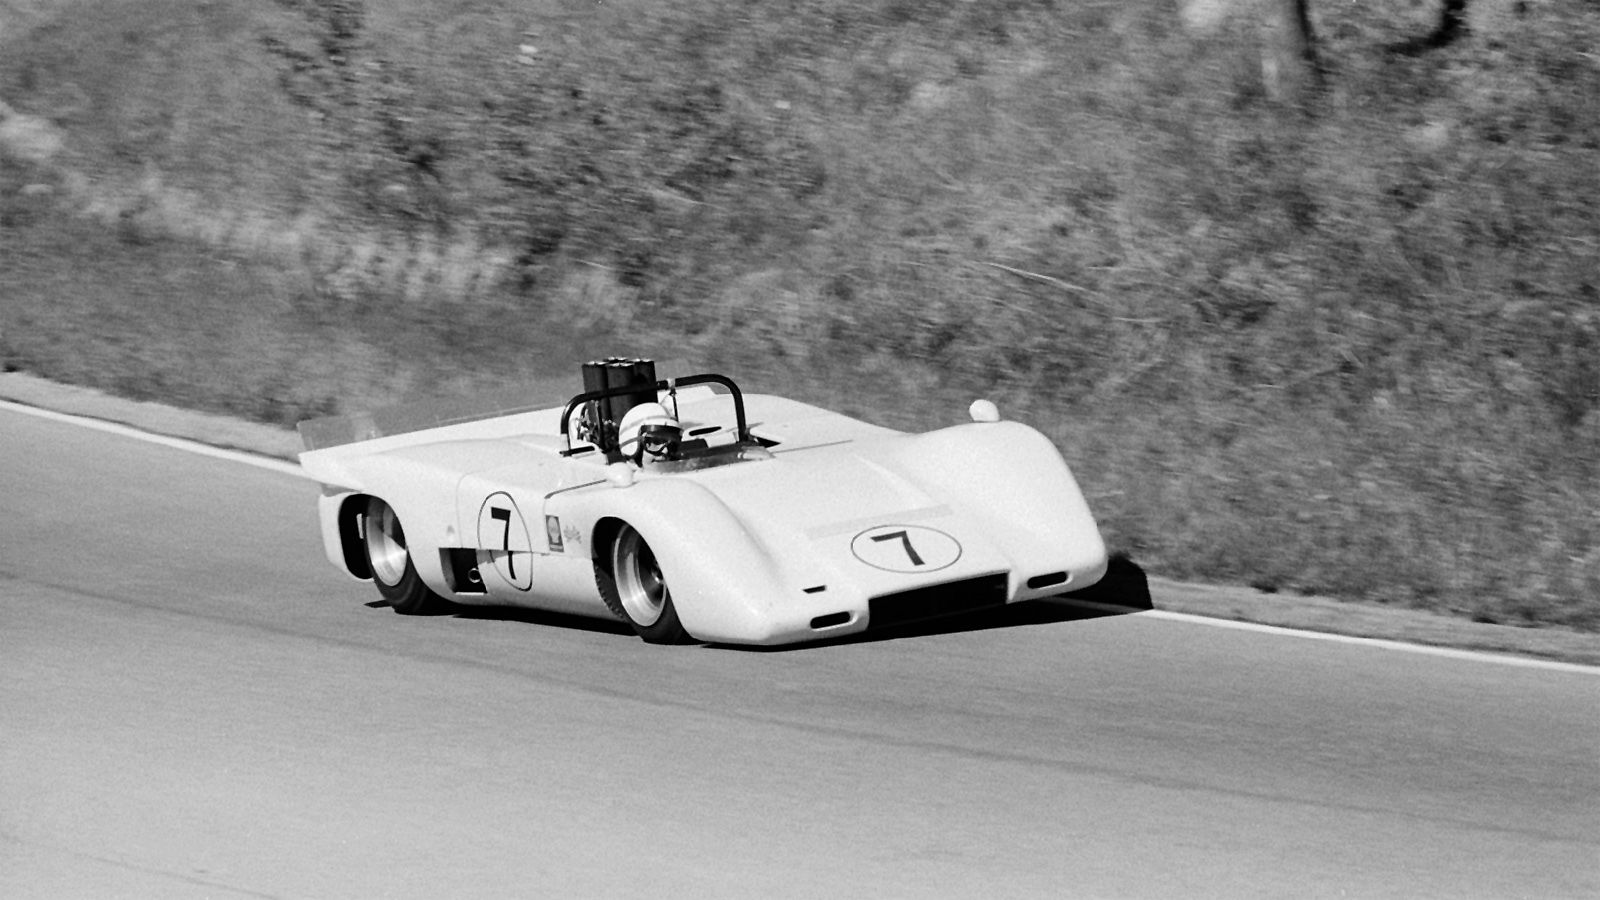 John Surtees Chaparral John Surtees hammers his M12 through turn 7, a left hand sweeping bend at  Mosport